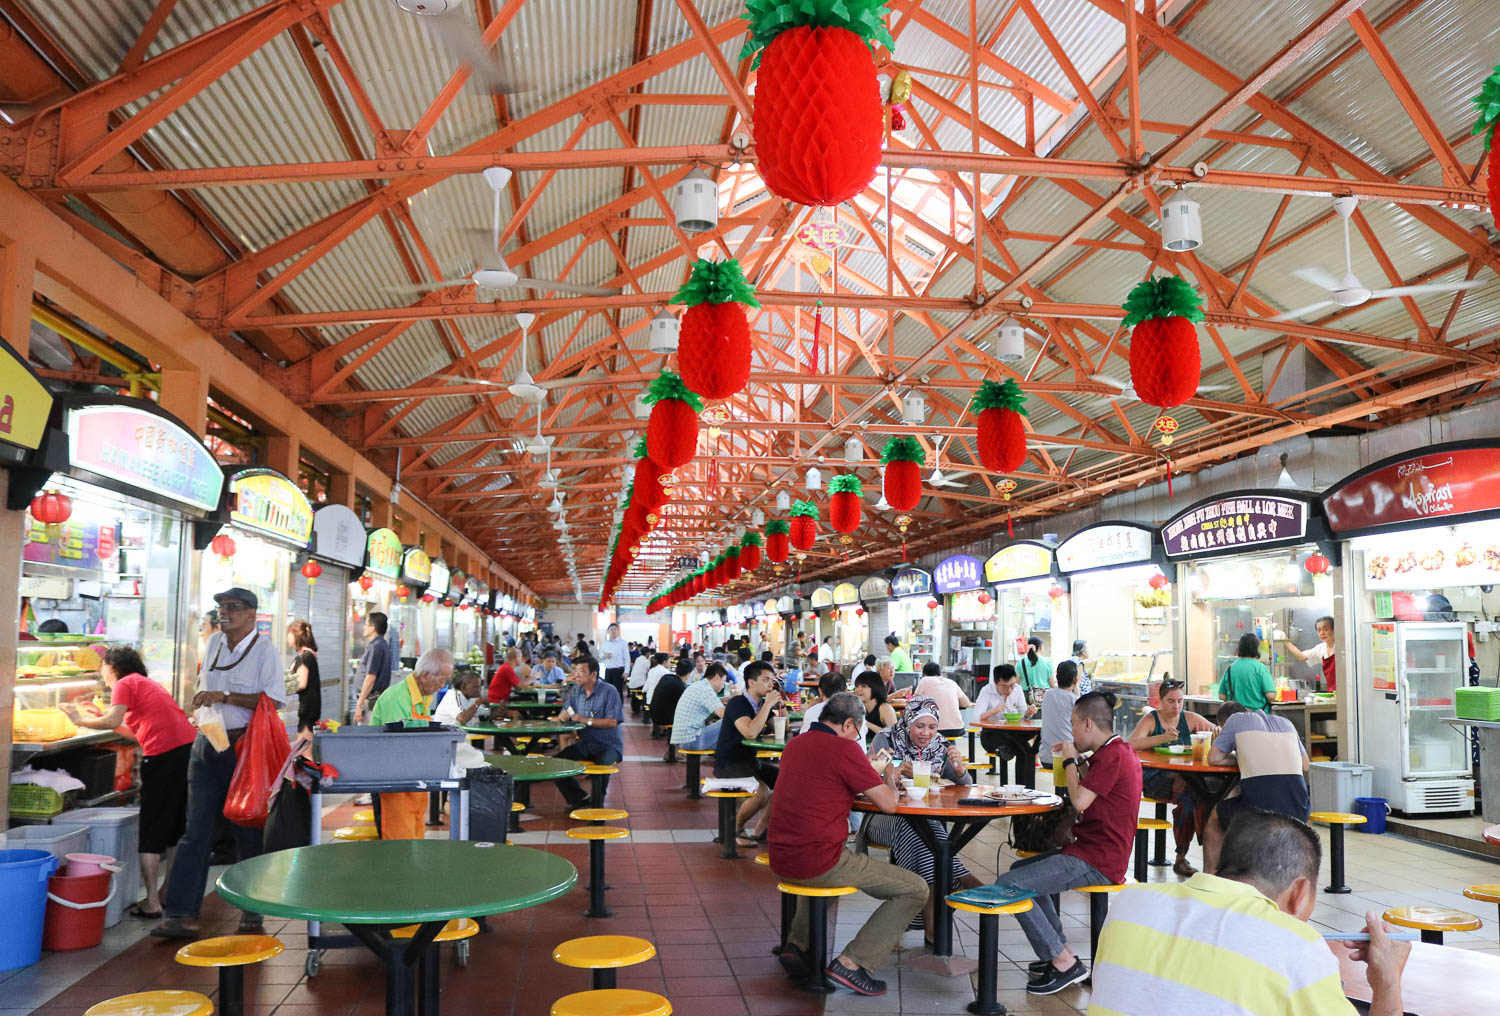 Maxwell Road Hawker Centre Singapore | Cobalt Chronicles